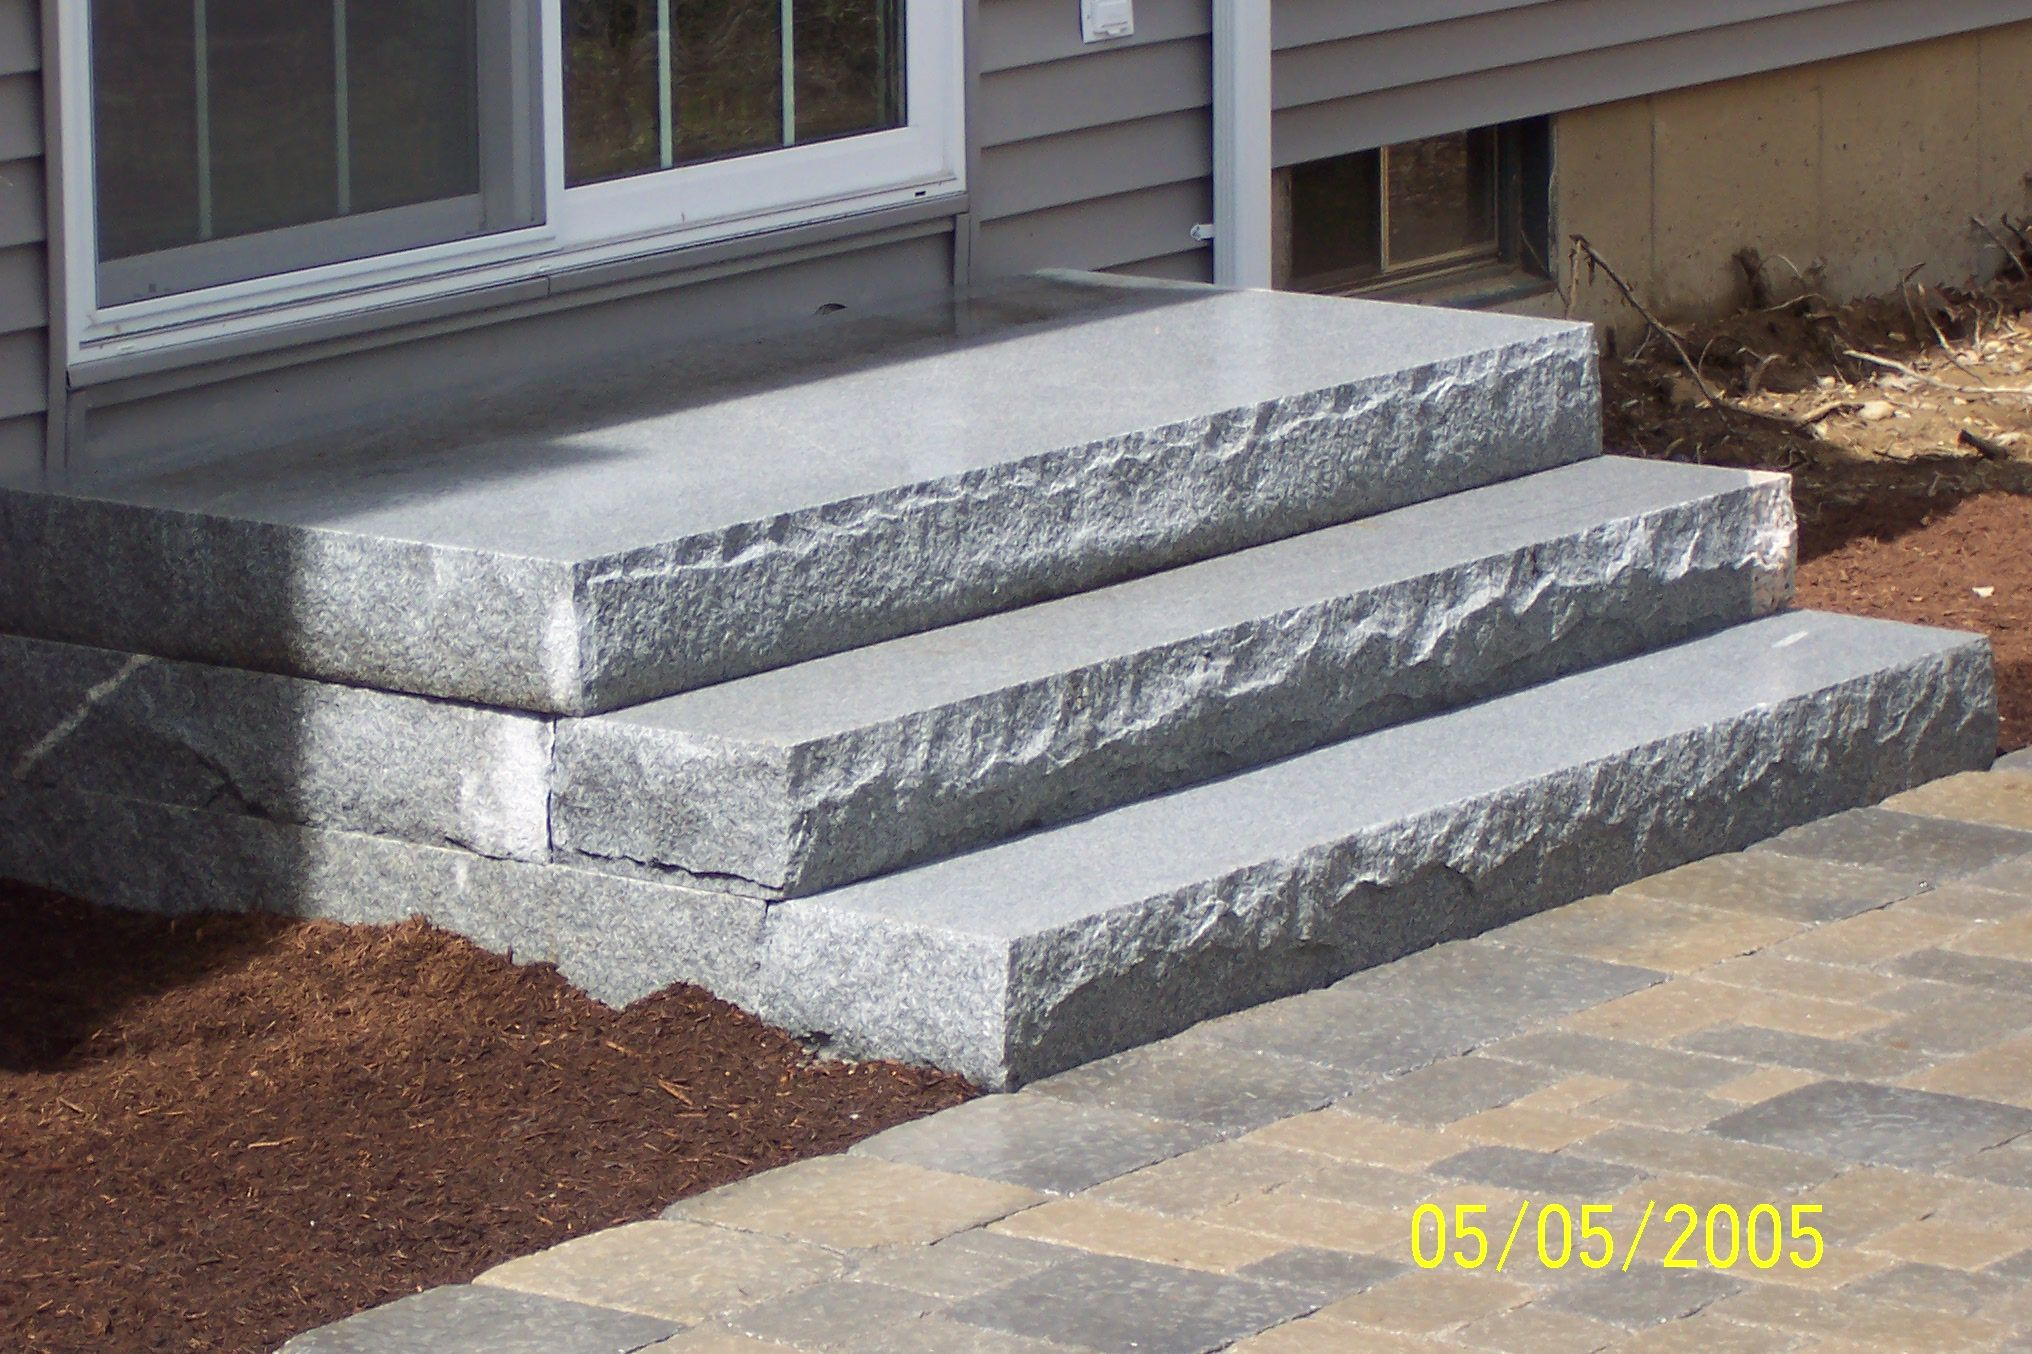 paver patio stairs with landing - Google Search | Backyard ...